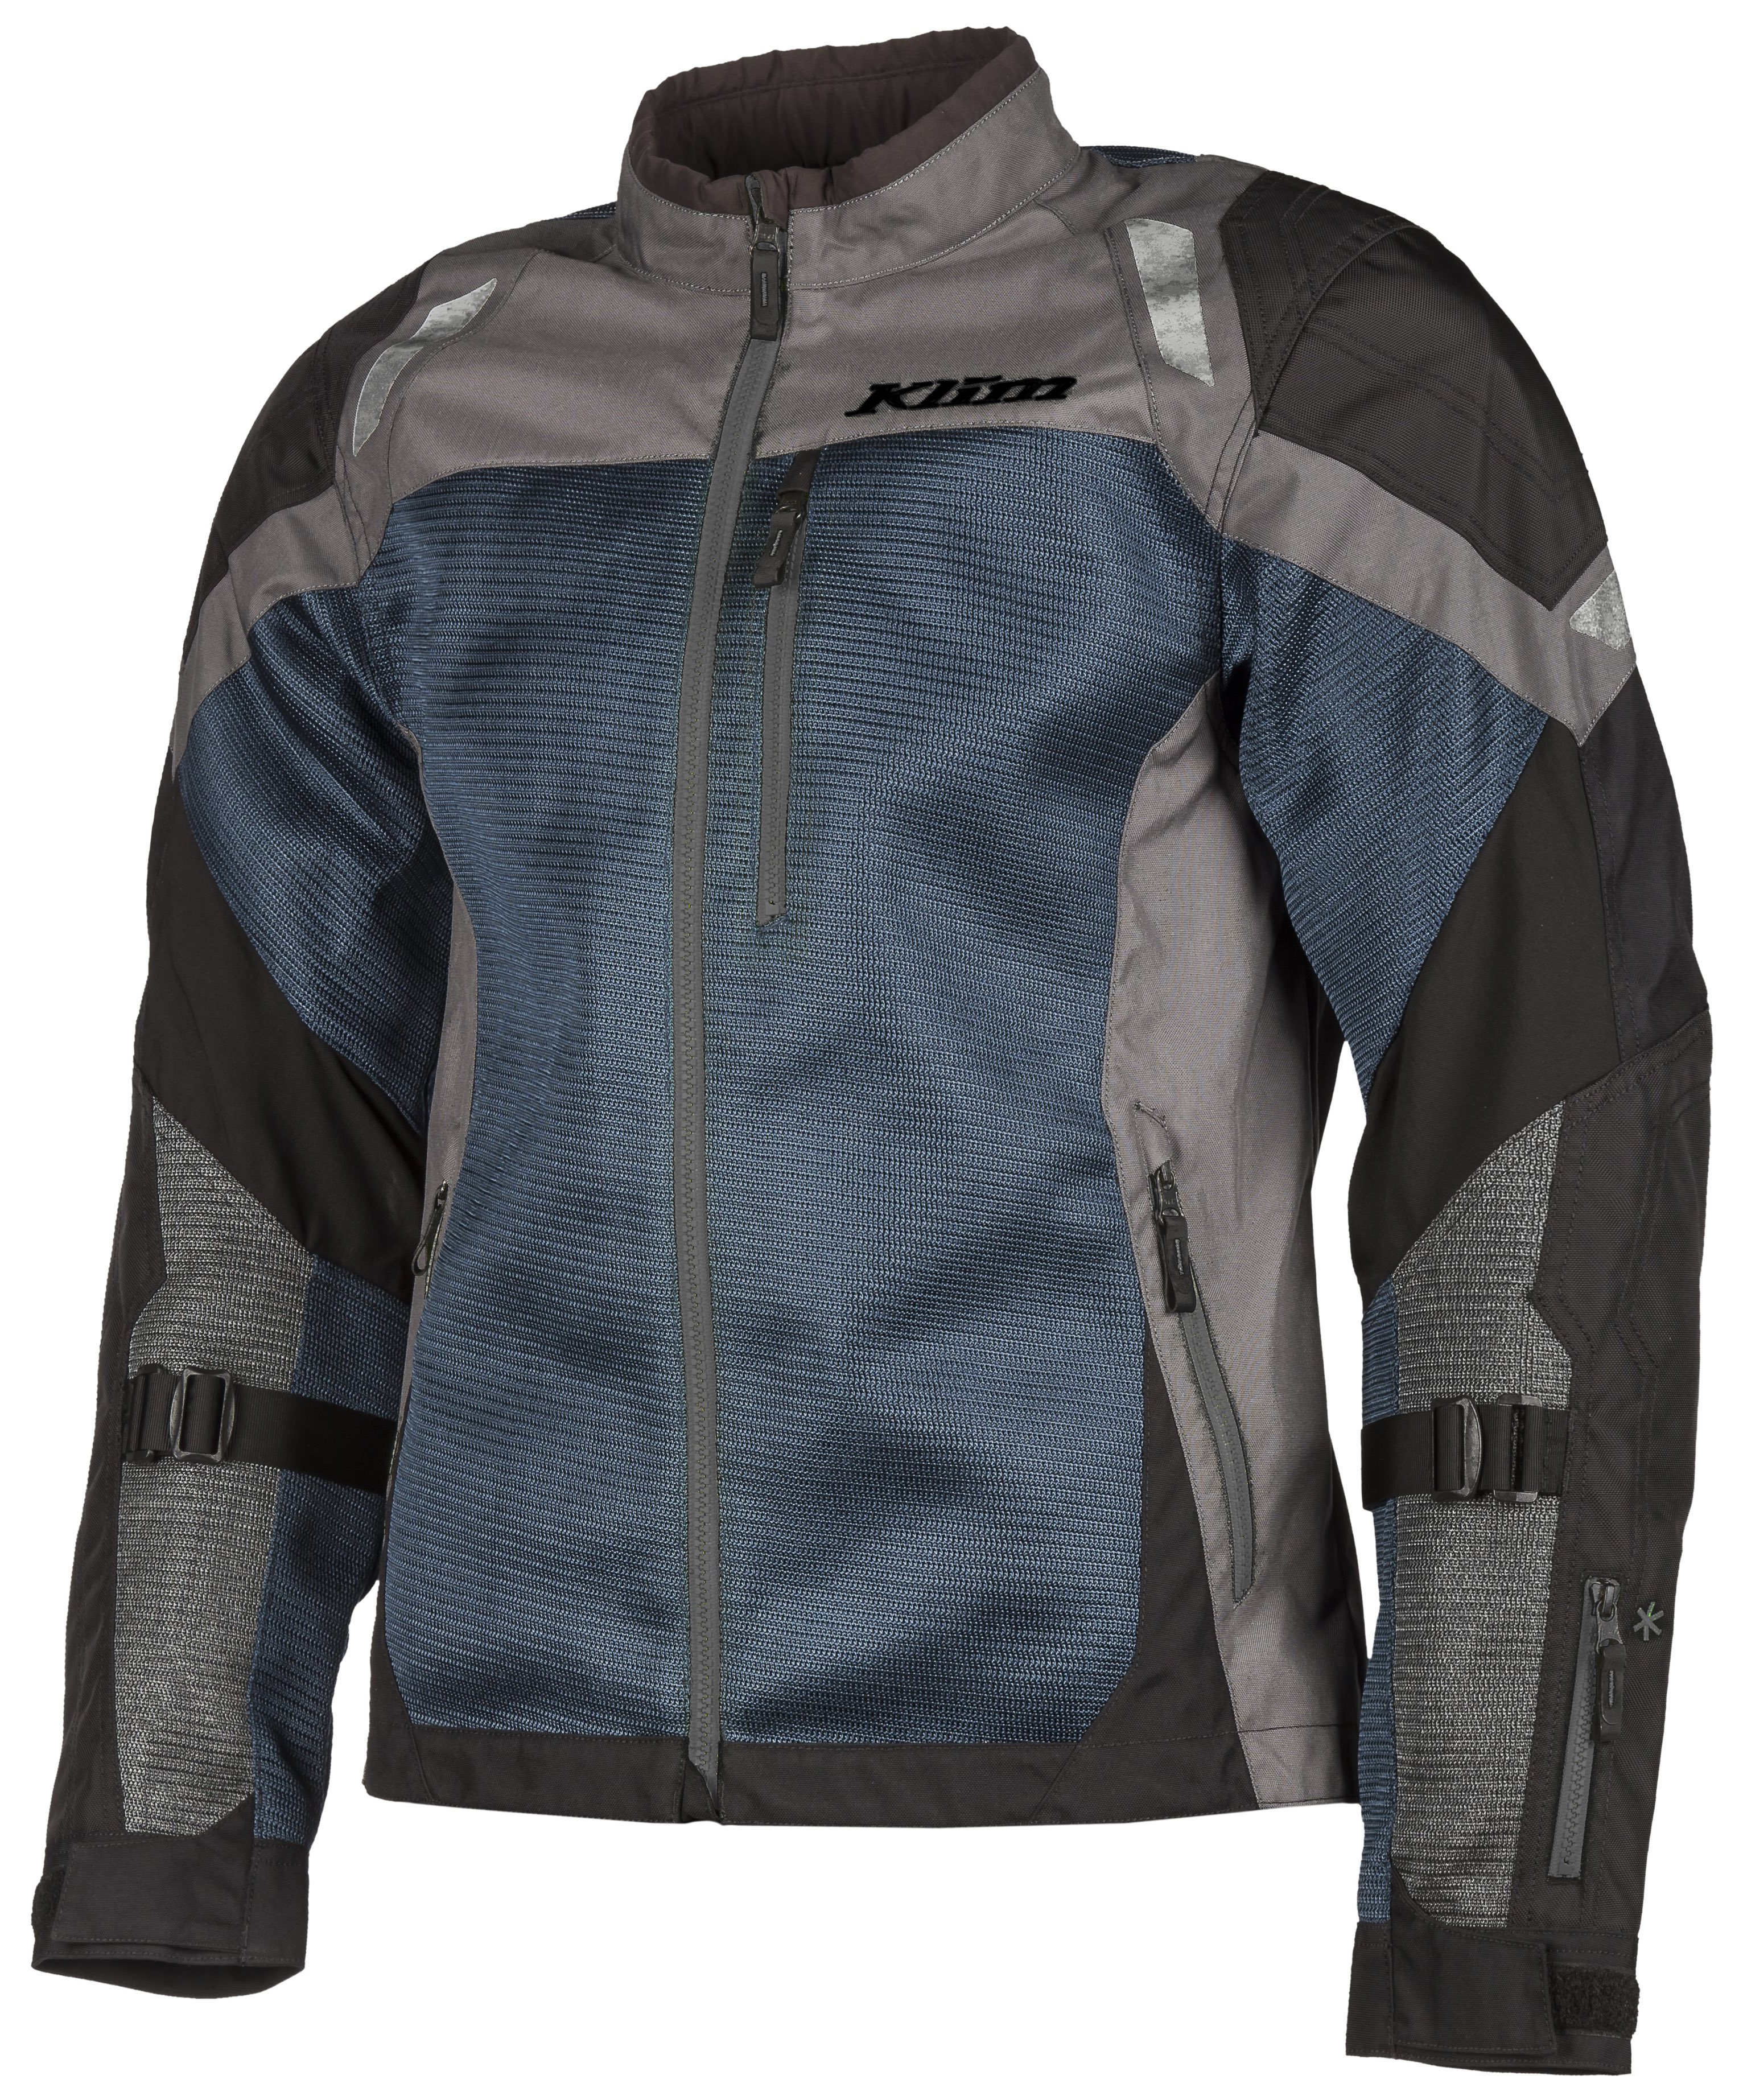 klim_induction_jacket_blue.jpg